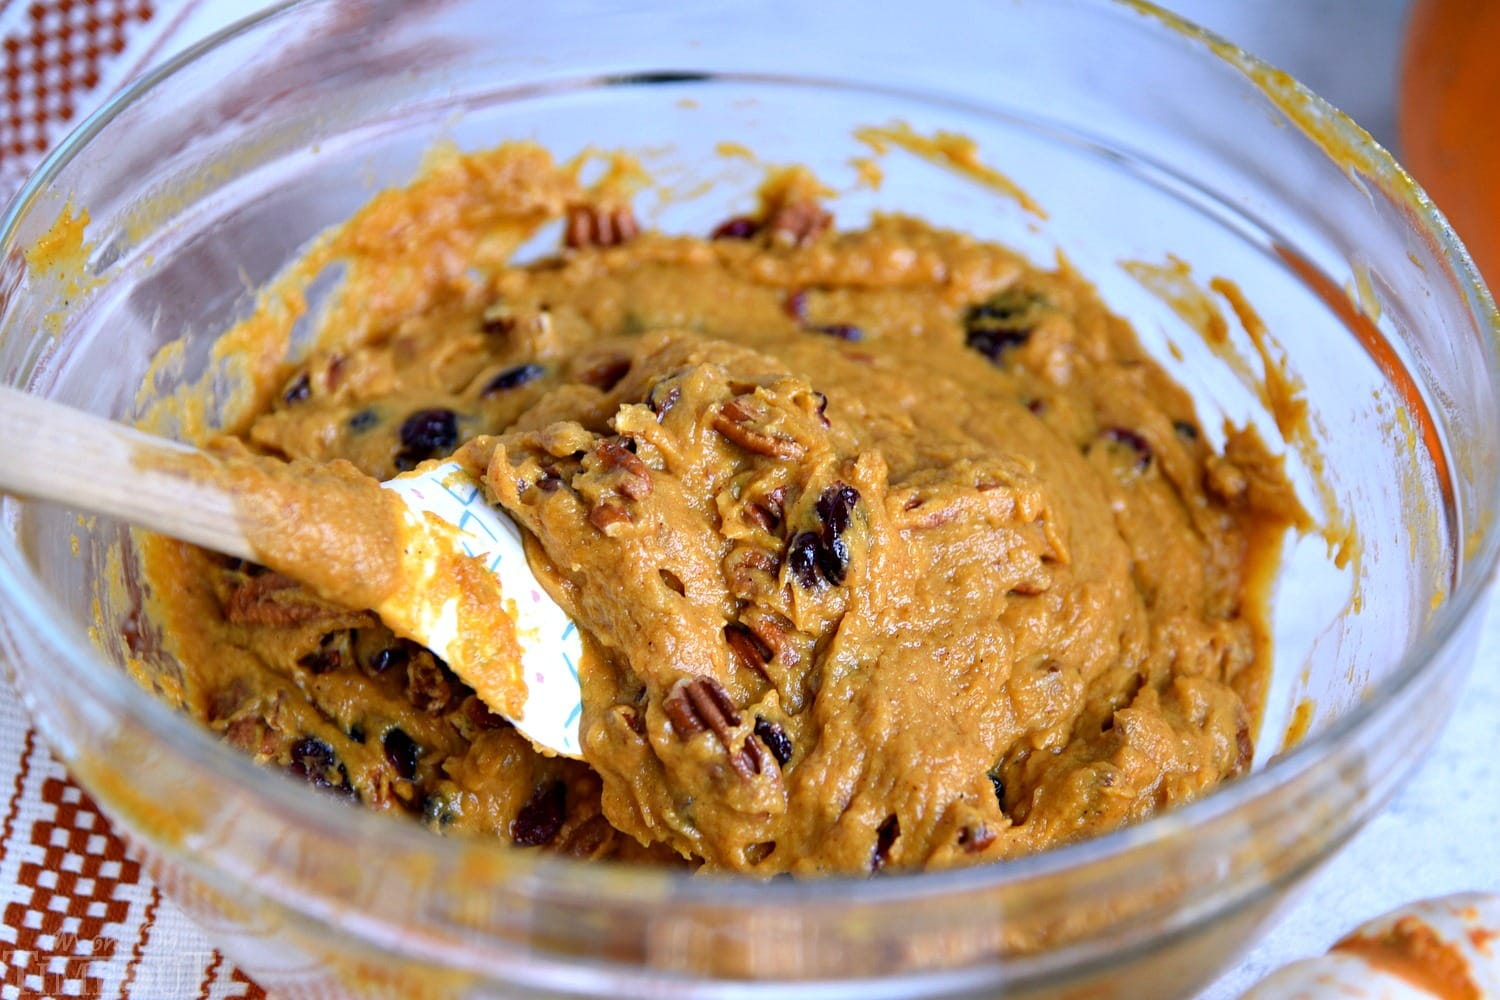 pumpkin bread batter in bowl ready to be added to the bread pan.